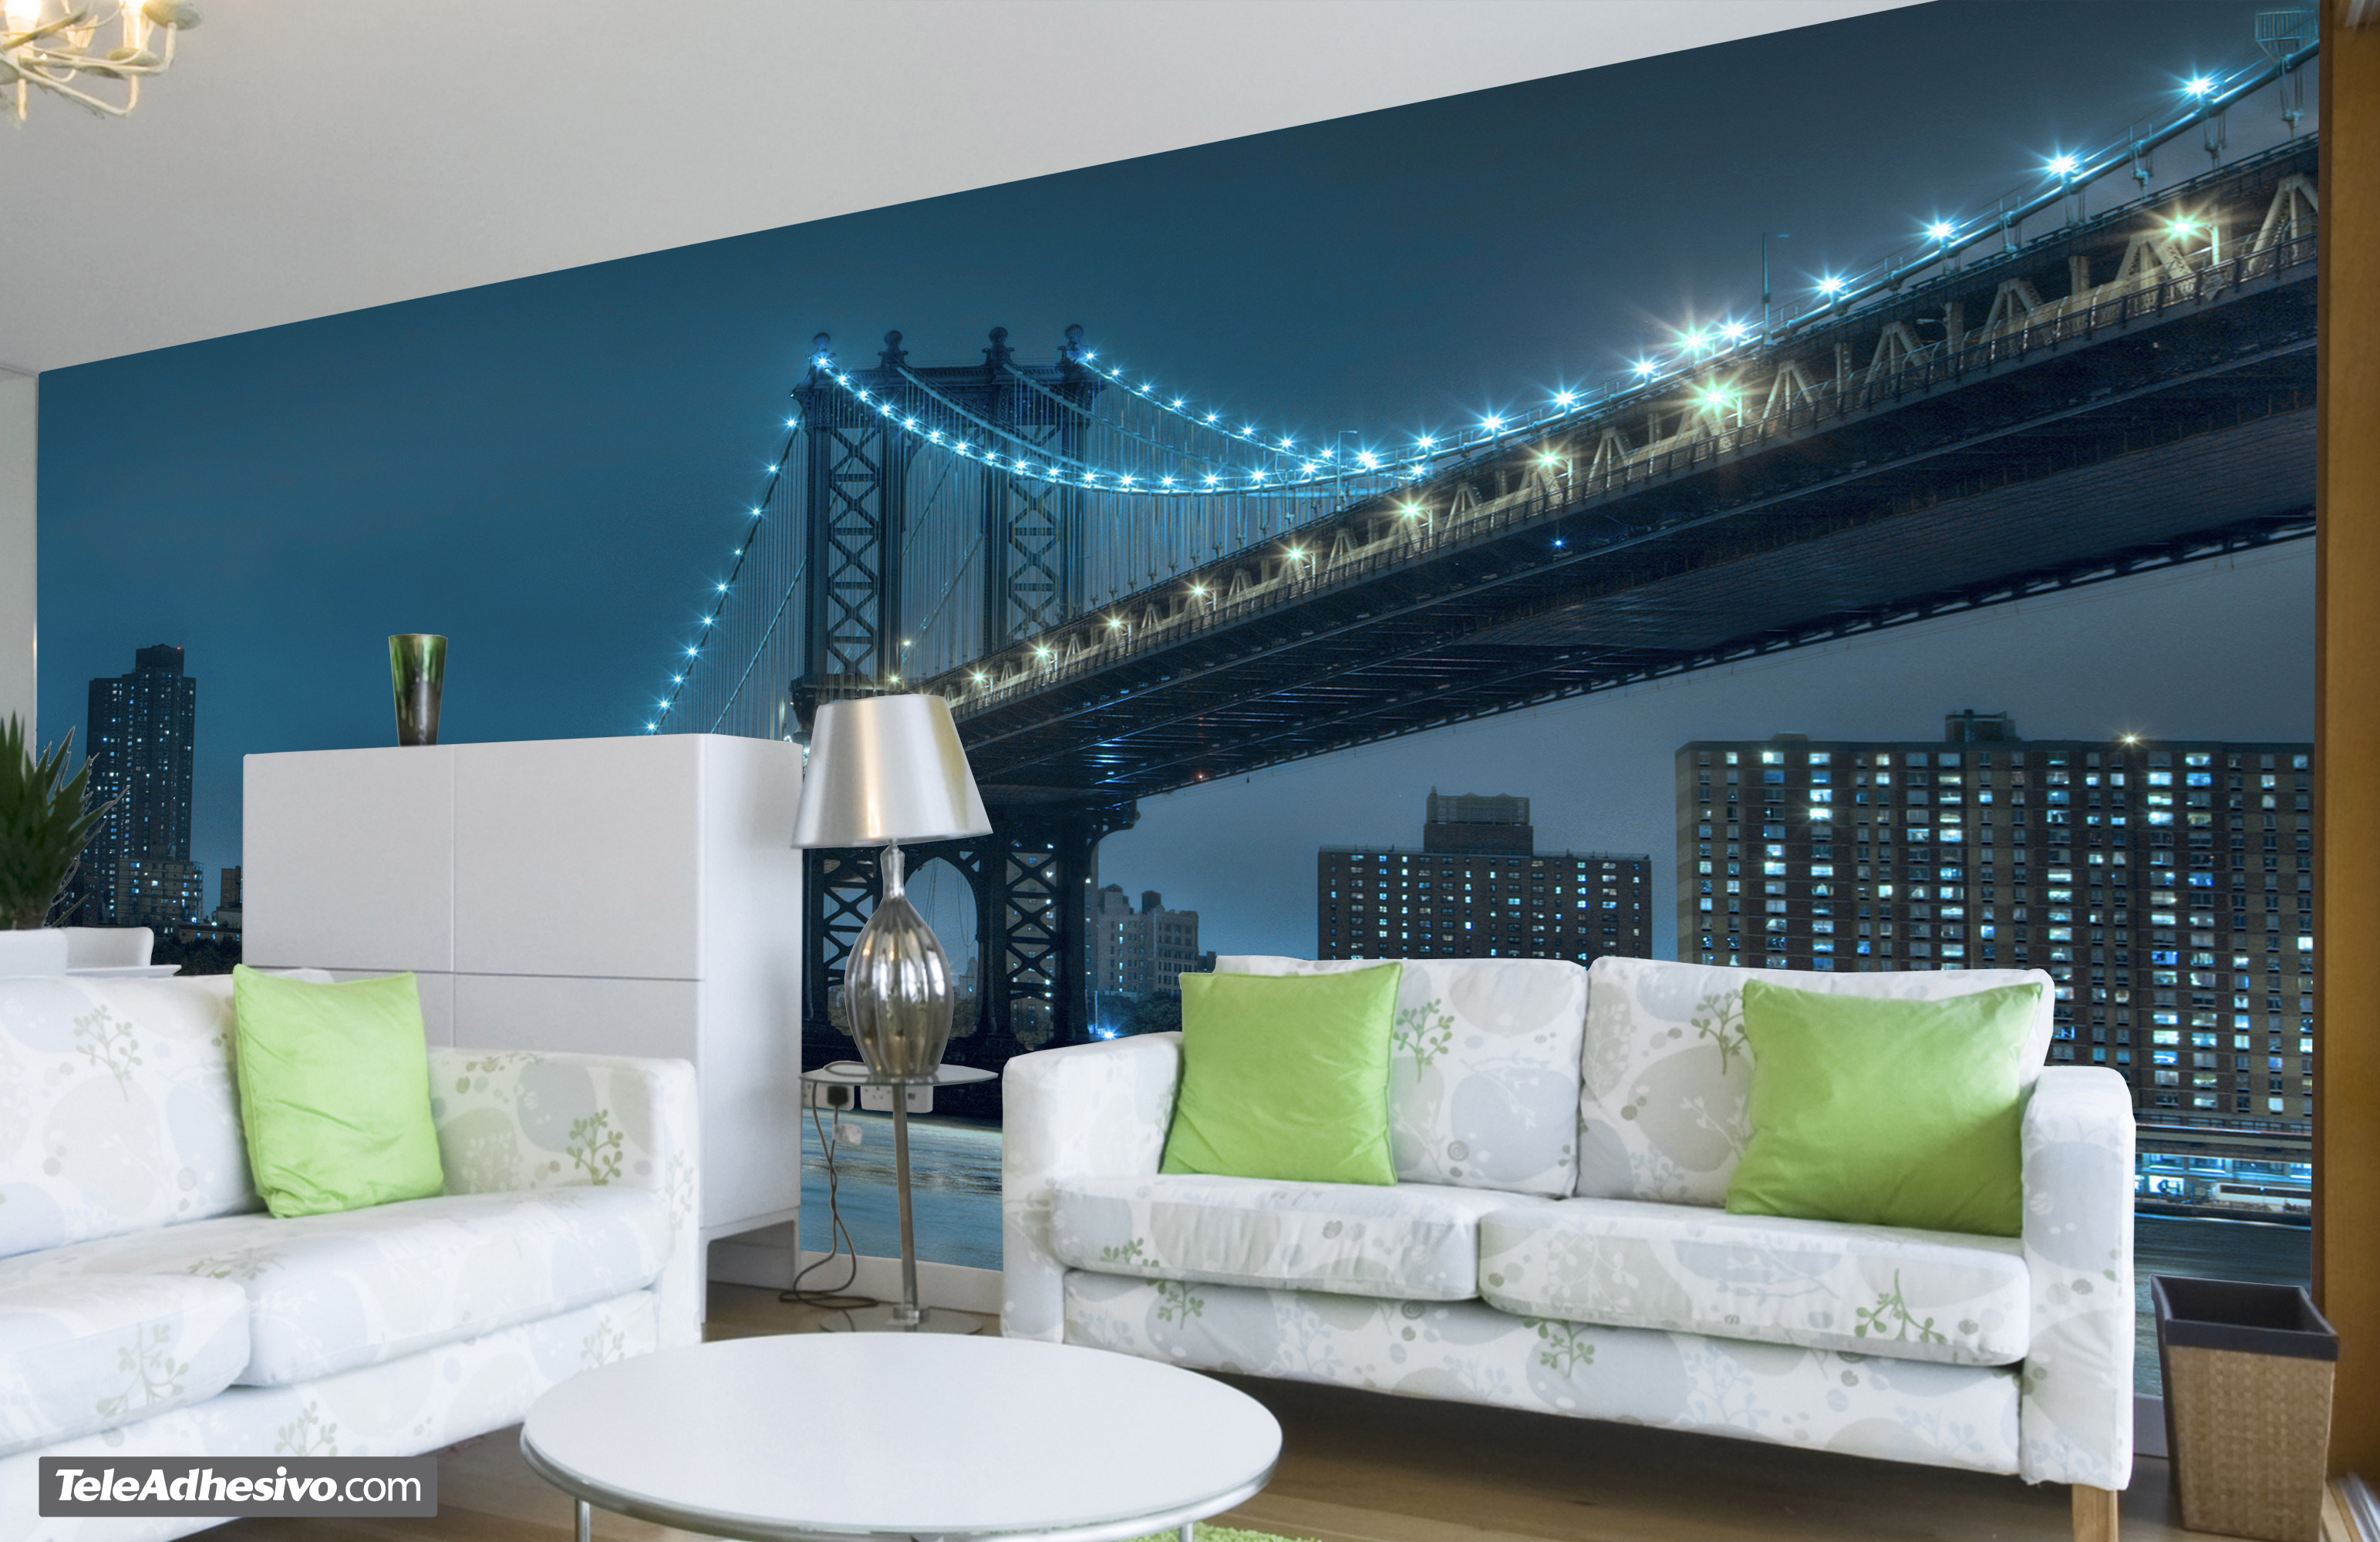 Fotomurales: Brooklyn con luces azules